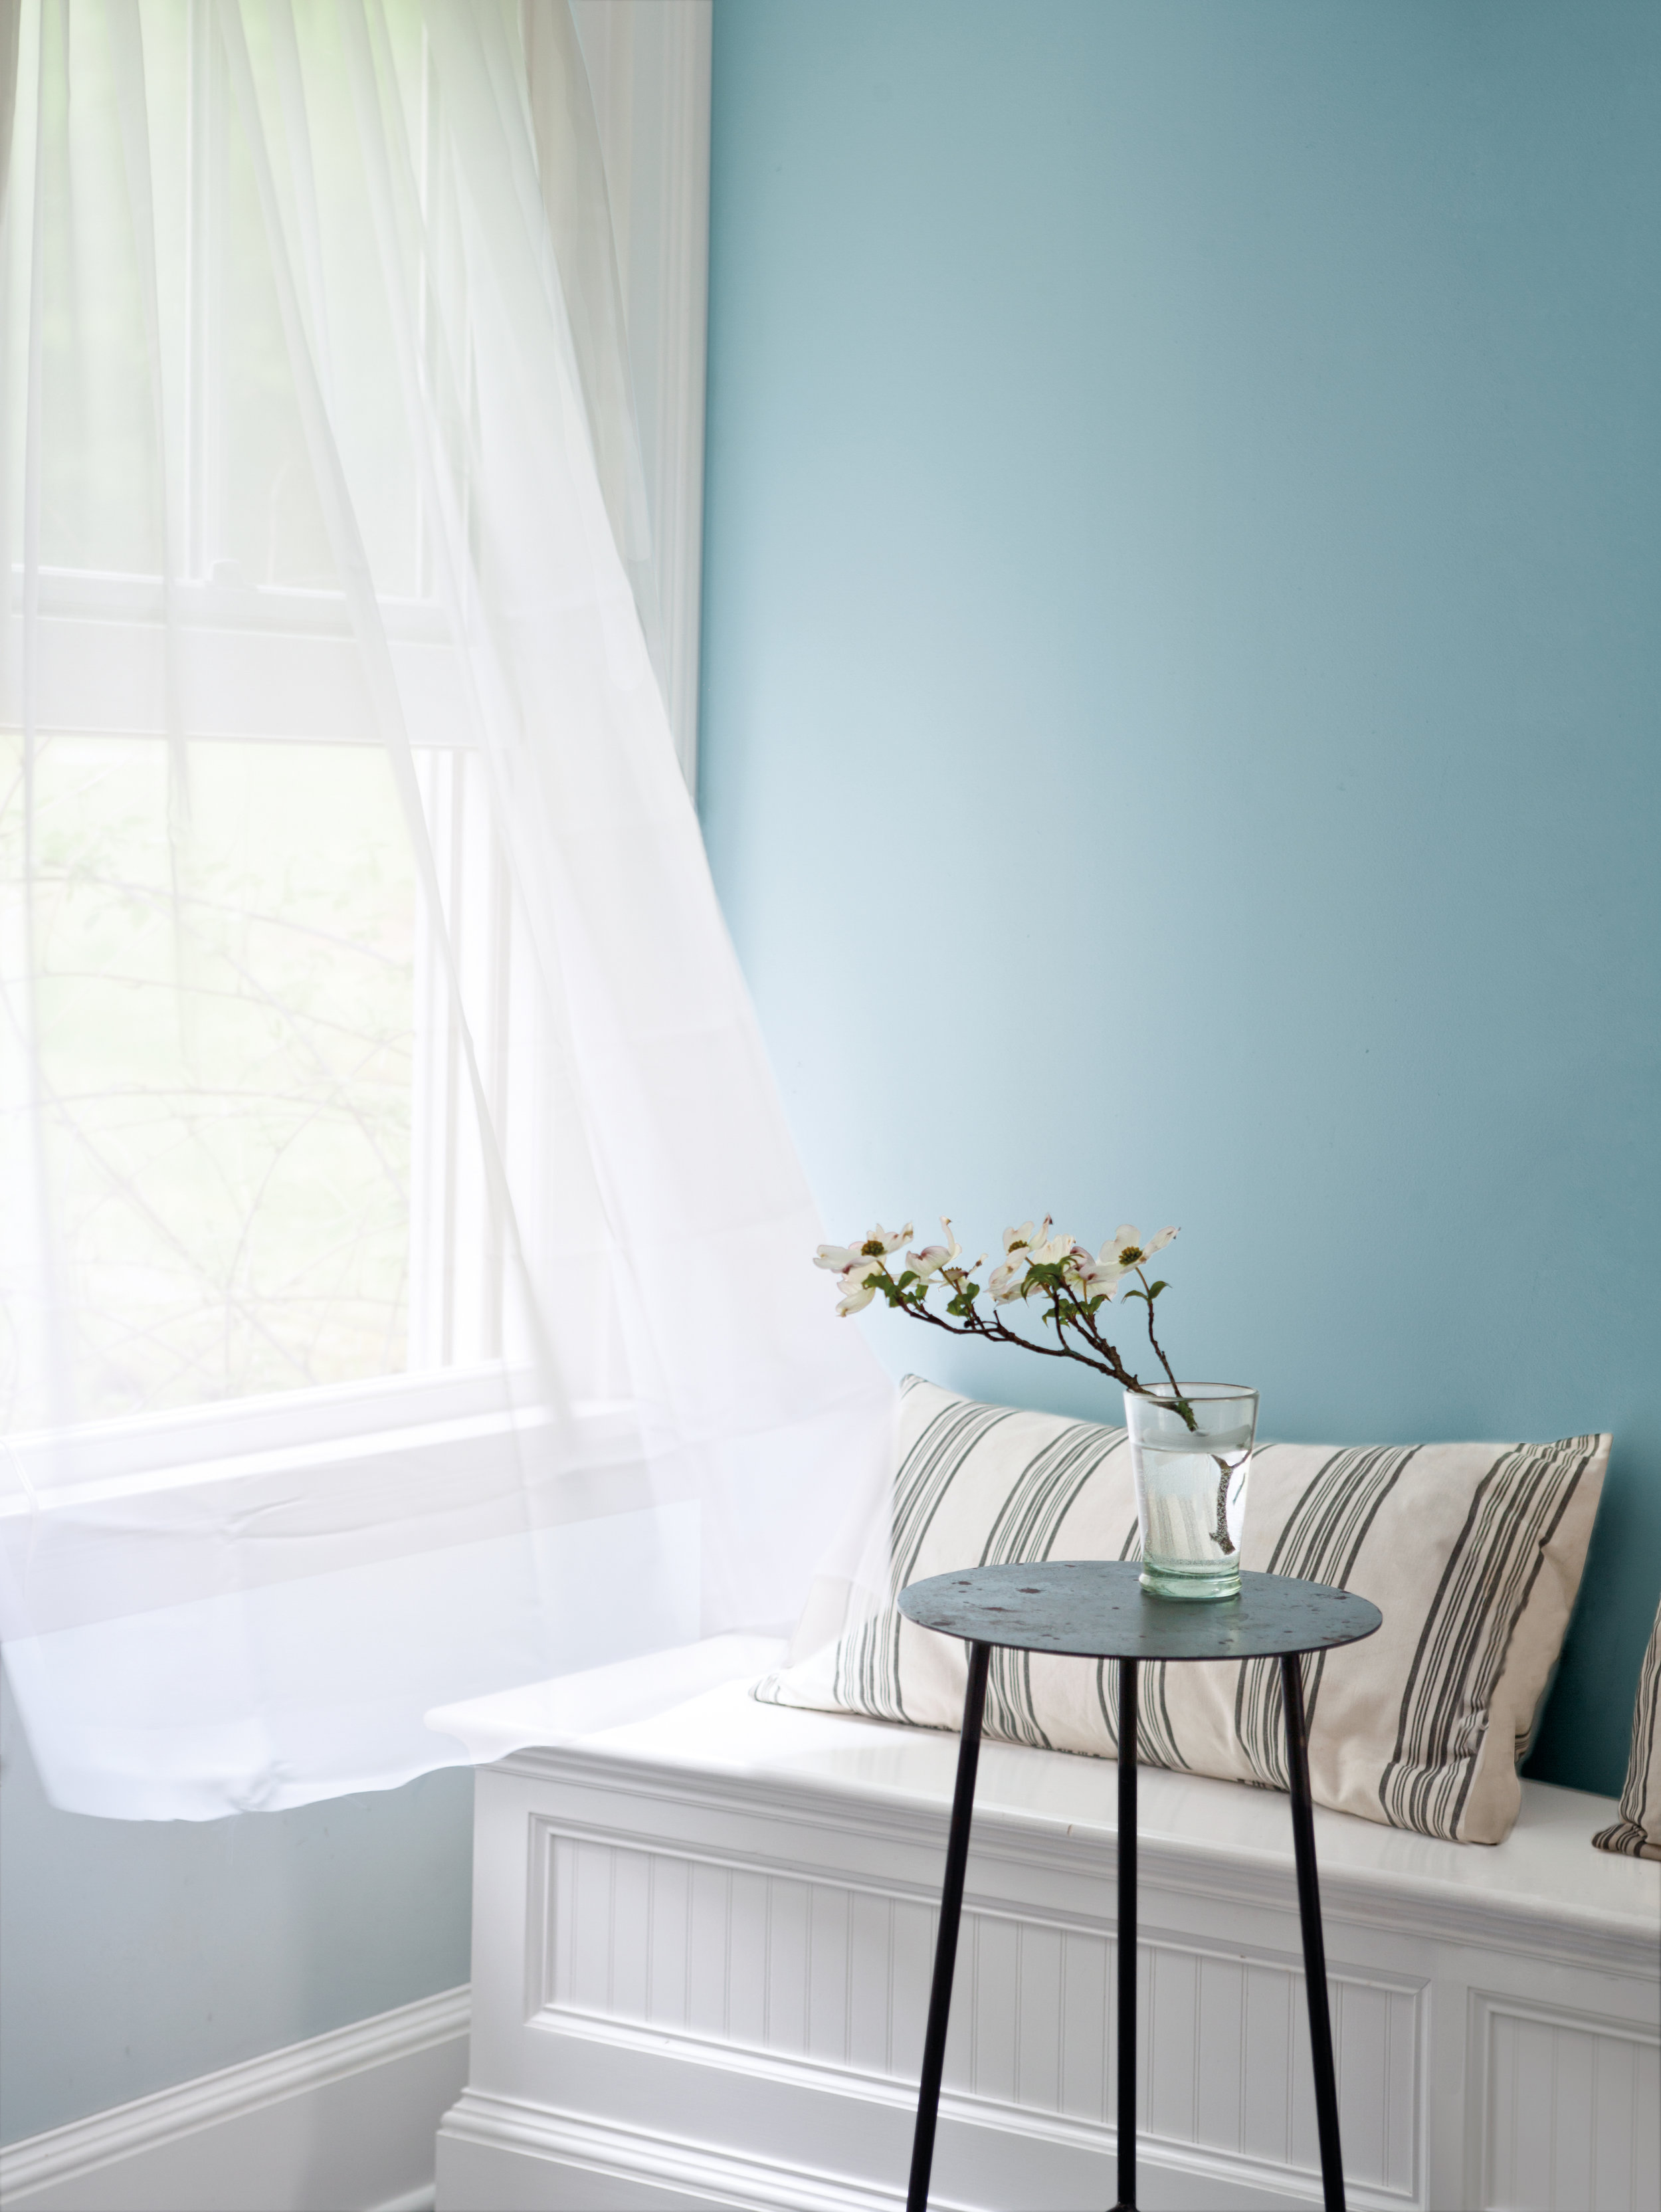 A Fresh Look - We all love redecorating our spaces; a fresh lick of paint in a bright new colour can transform a room from drab to fab in an instant. The Natura collection from Benjamin Moore now means you can paint with a clear conscience. Its slogan, 'Green without Compromise®' sums up the range perfectly - these non-toxic paints are emission-free in their production and are asthma and allergy friendly, making them the ideal choice for eco-loving home decorators.